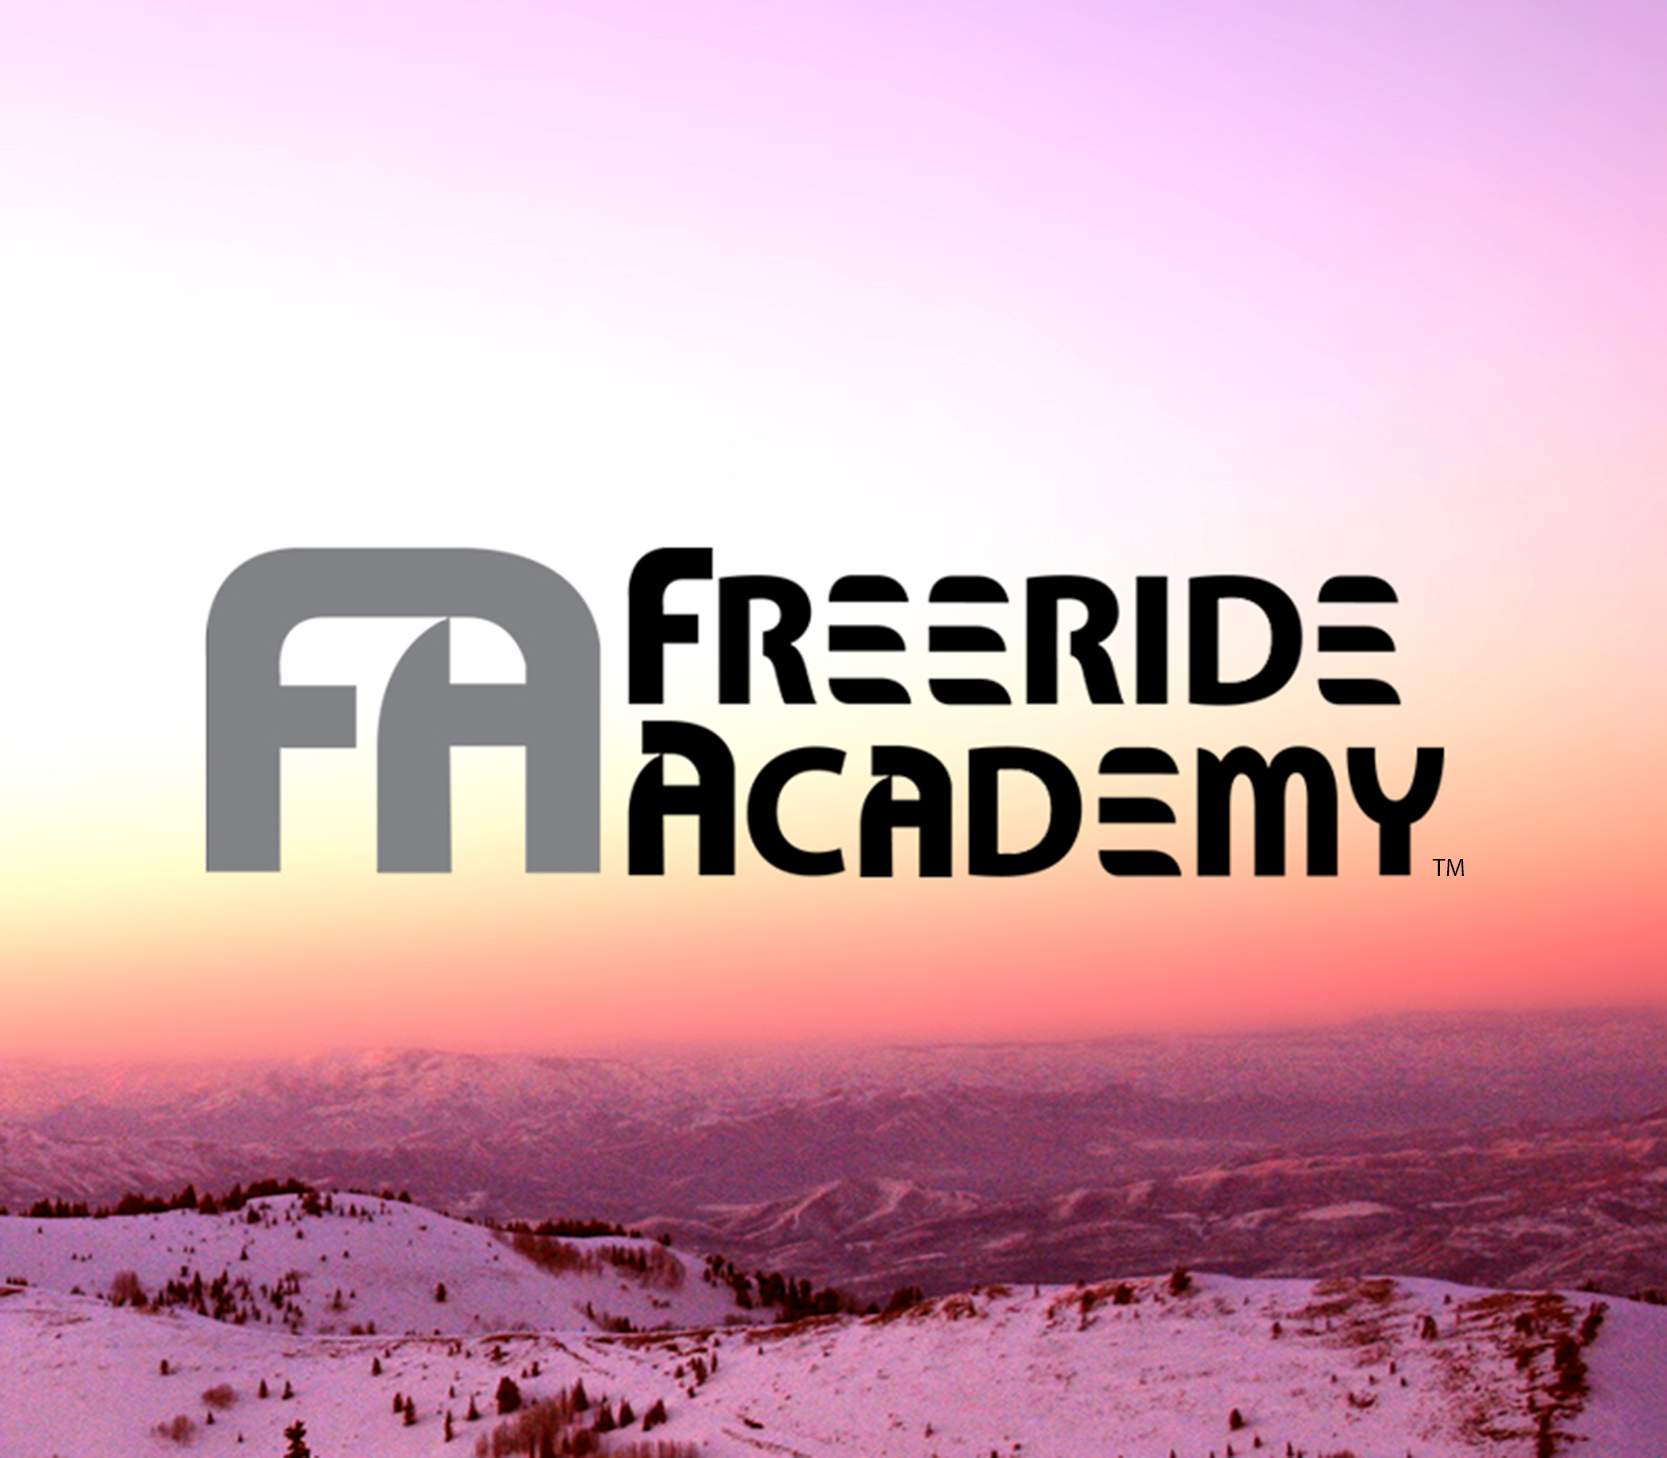 Freeride Academy, The New Skiing And Snowboarding Club, Is One Of The Most  Successful Clubs BYU Has Ever Had.